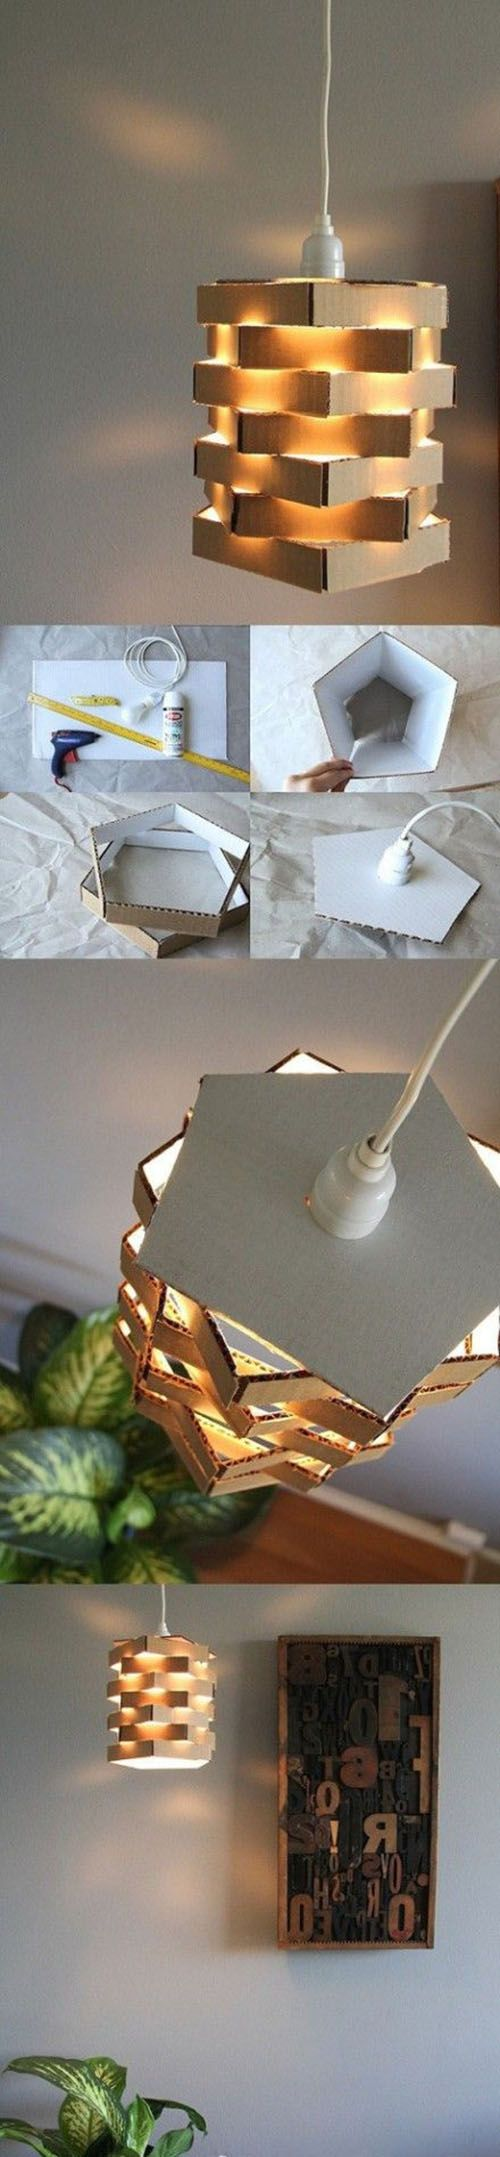 light idea //Manbo